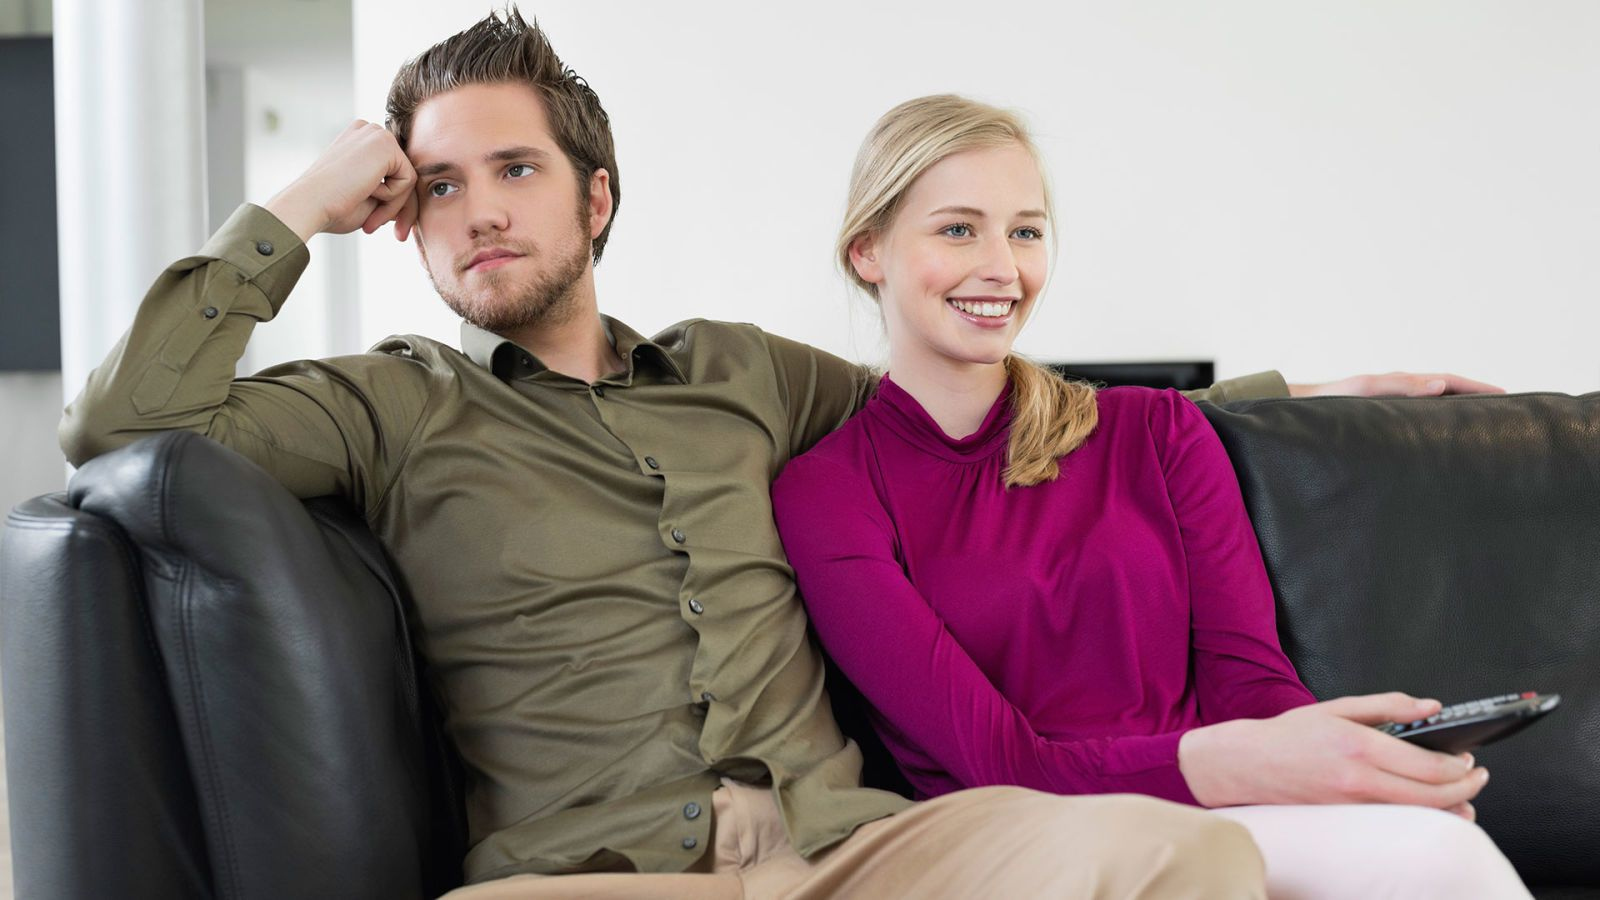 man and woman watching tv